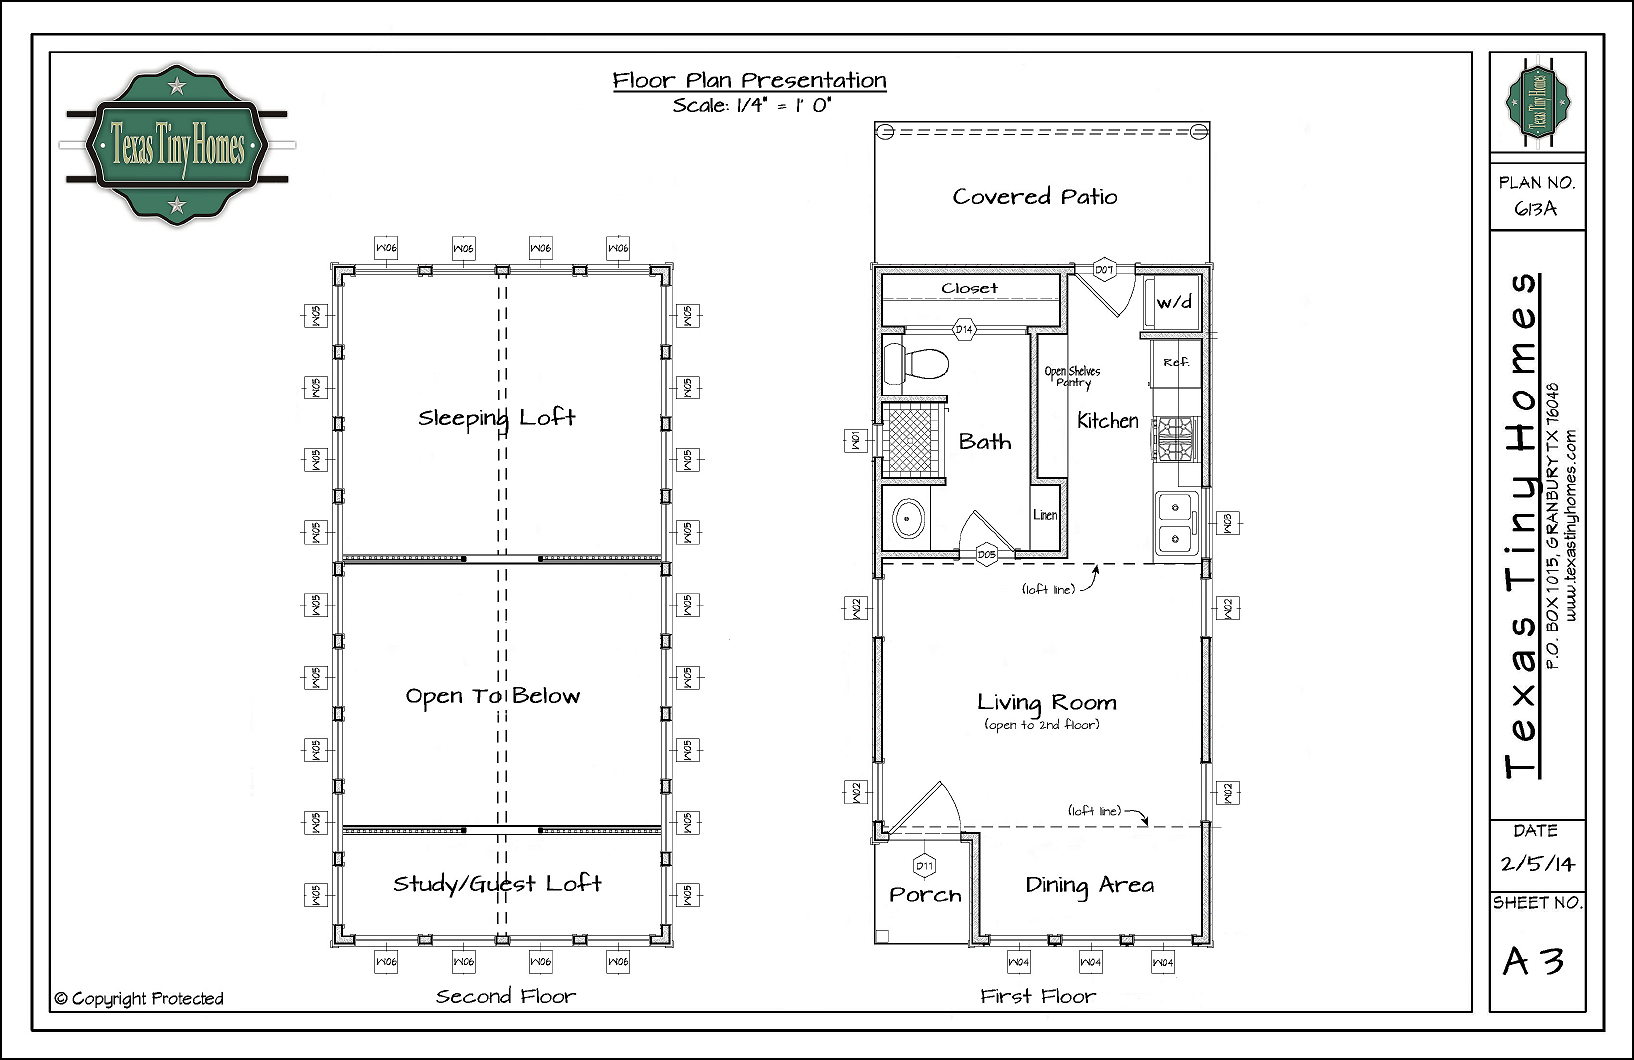 Plan 613 a for Floor plans presentation